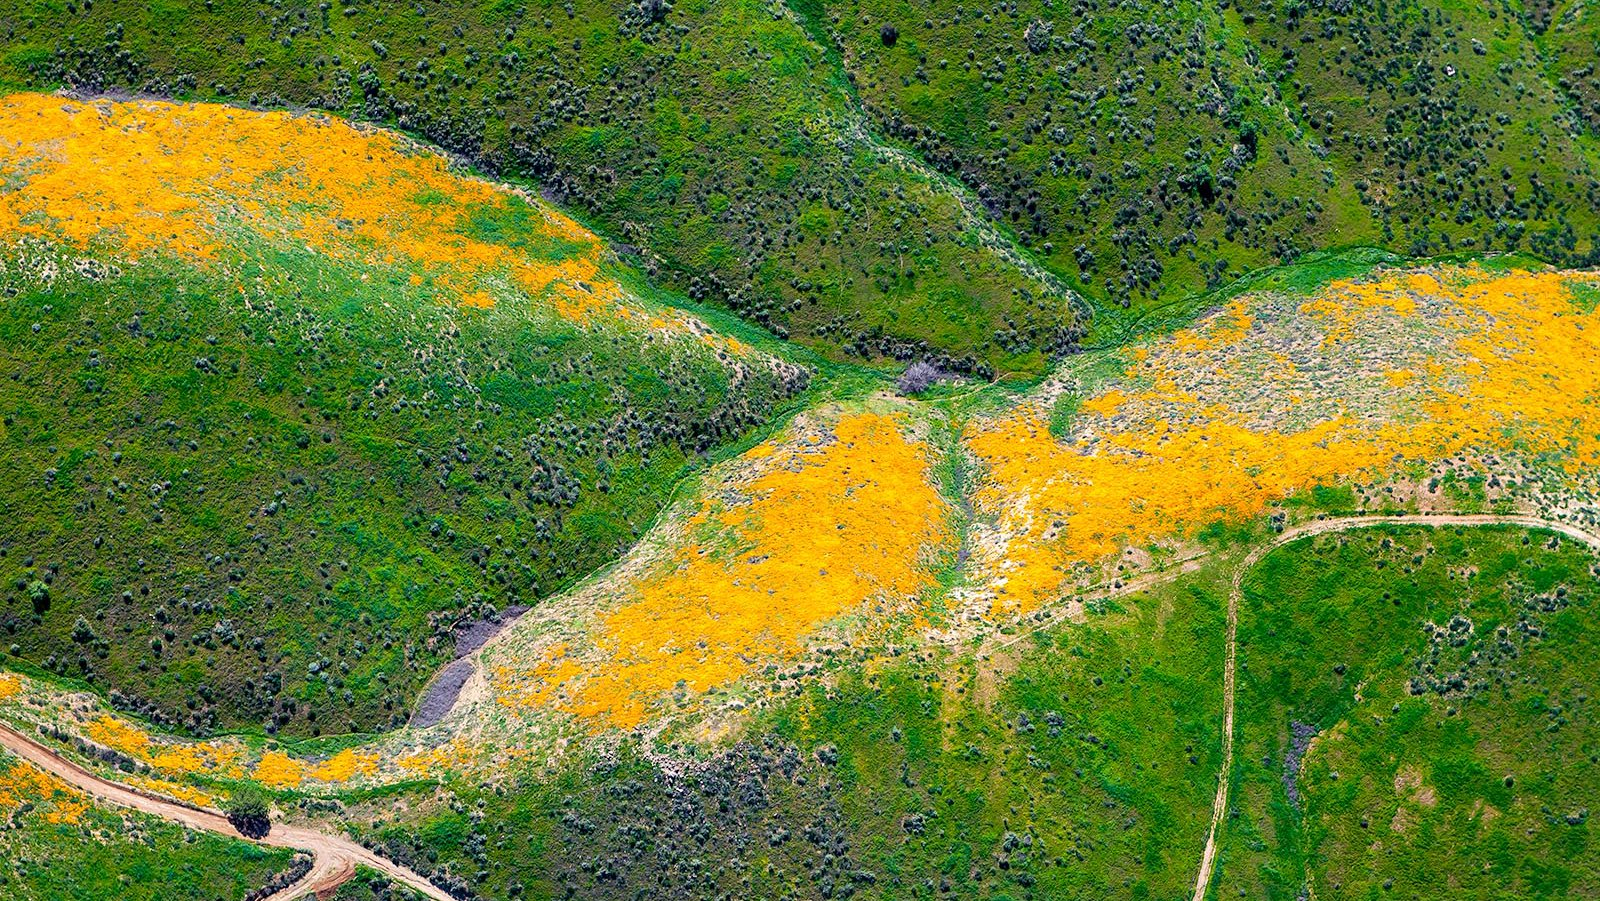 Blog image of the California Poppies blooming in the mountains near Lake Elsinore, California